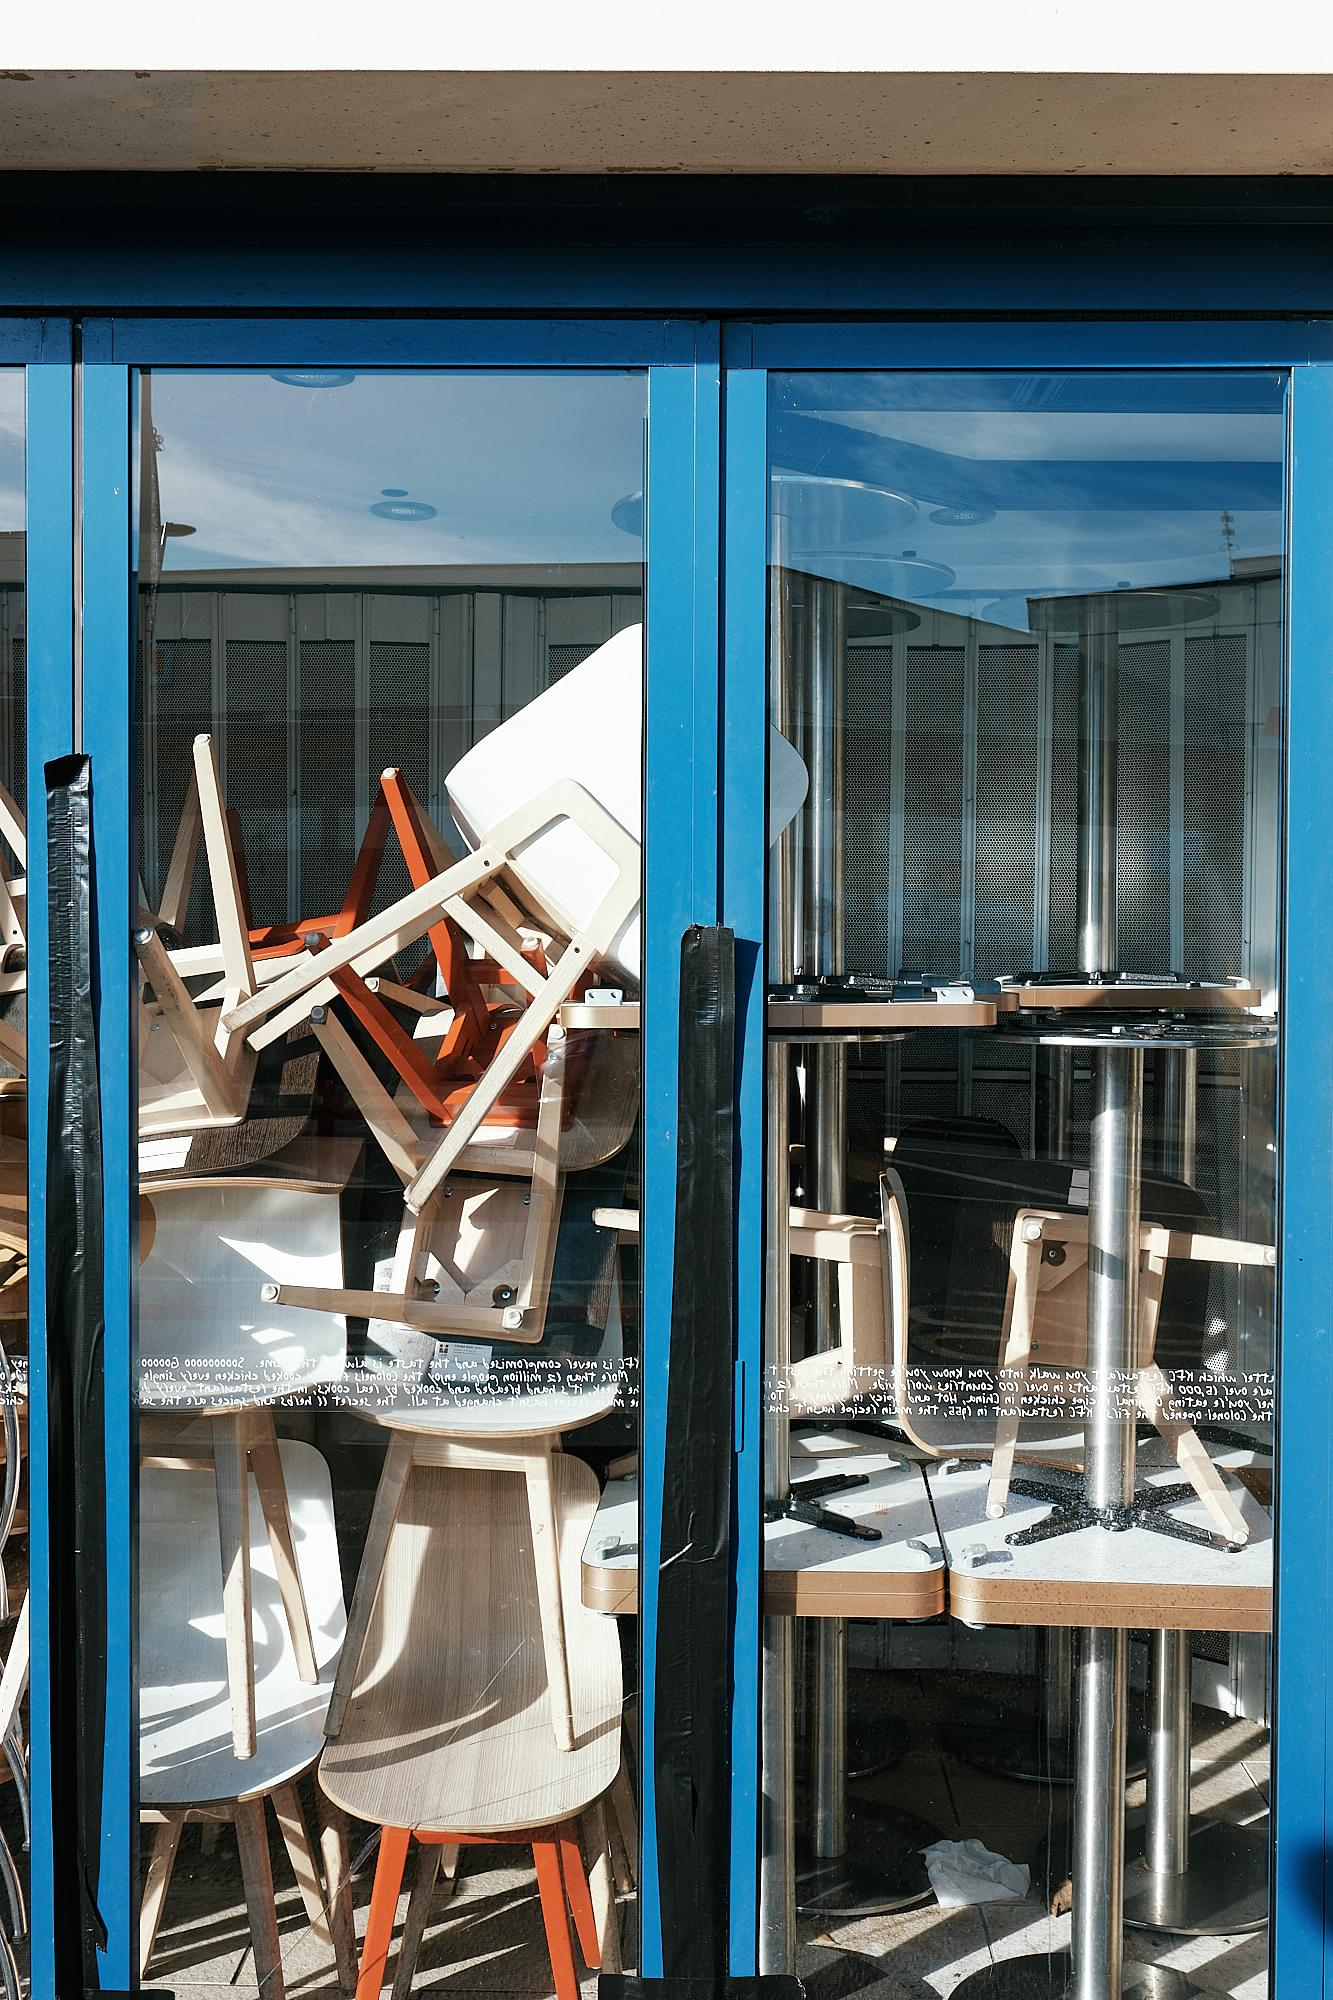 chairs stacked against shop window